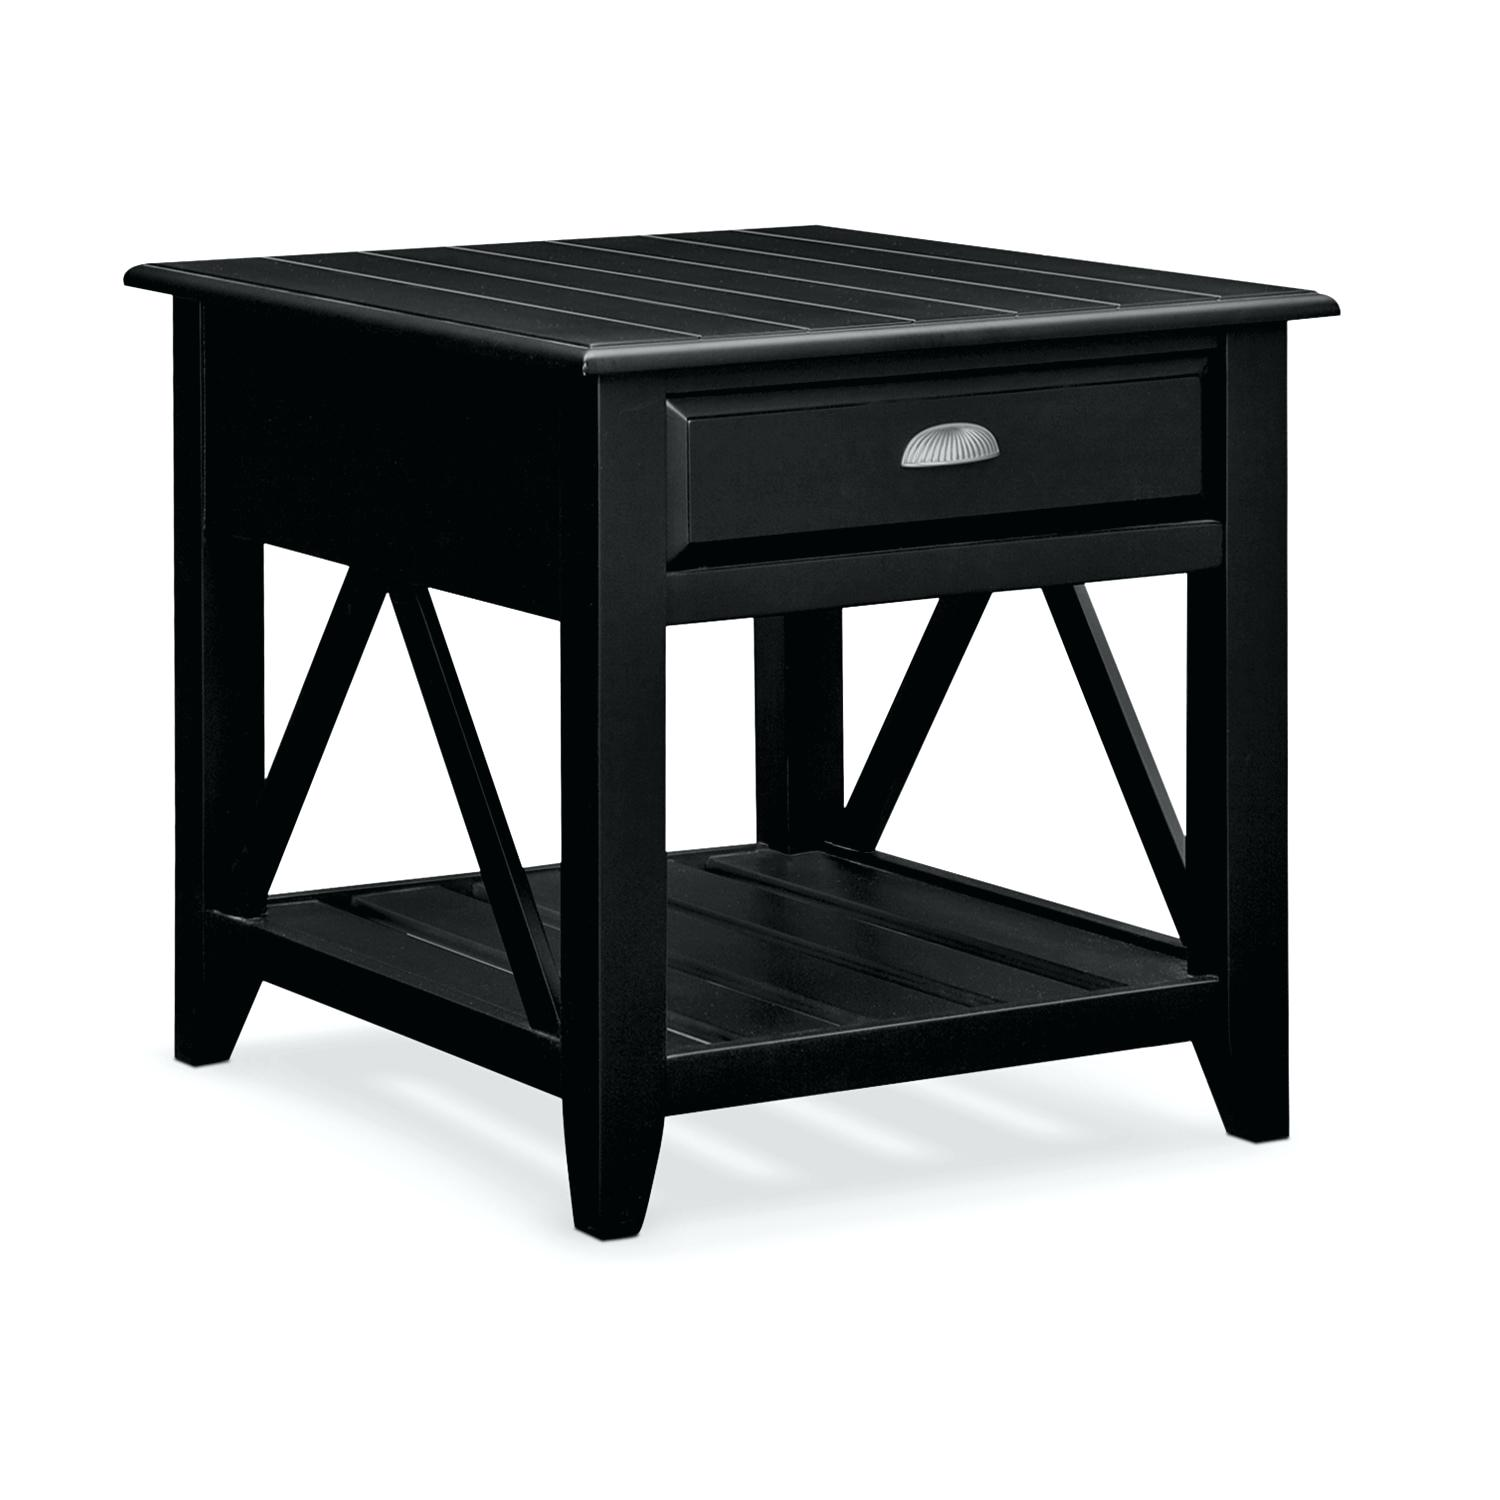 coastal end tables accent and occasional furniture plantation cove table black treasure trove large with storage wood metal inch legs way lamps vintage round ashley pub best dorm